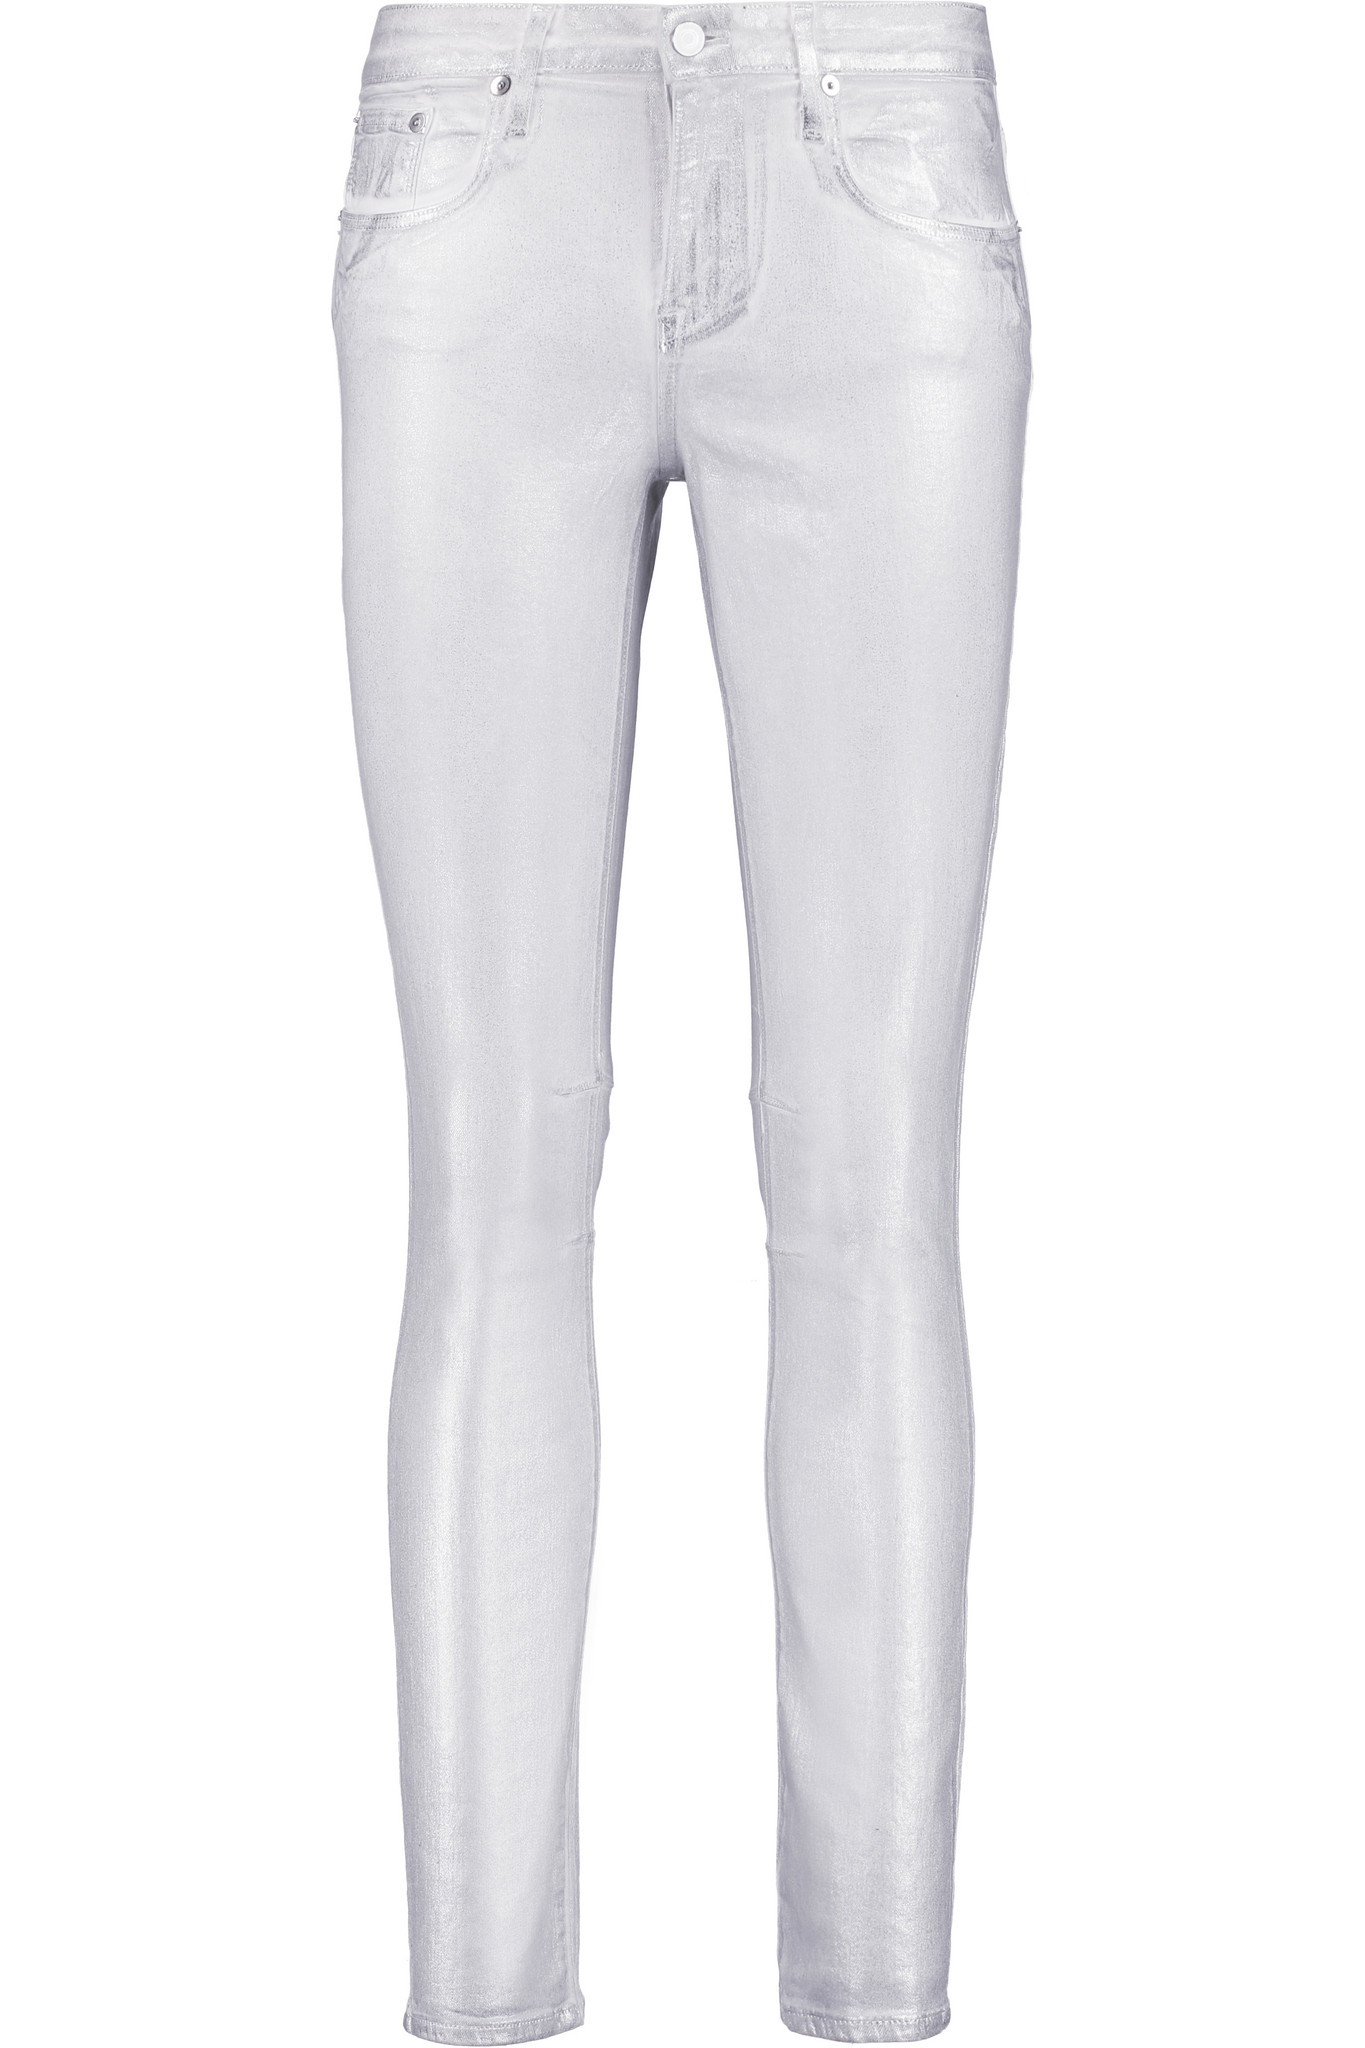 Helmut lang Metallic Coated Mid-rise Skinny Jeans in Metallic | Lyst